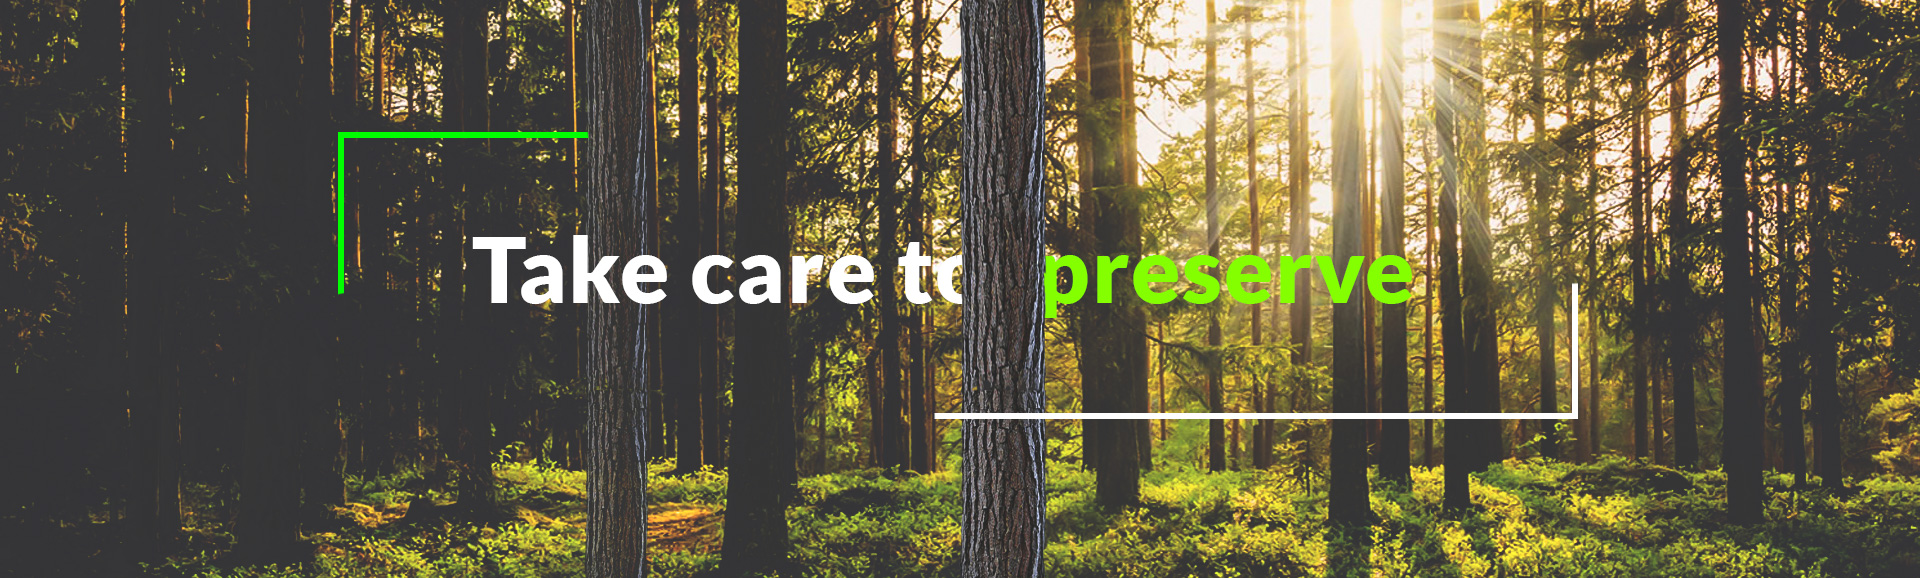 Take care to preserve